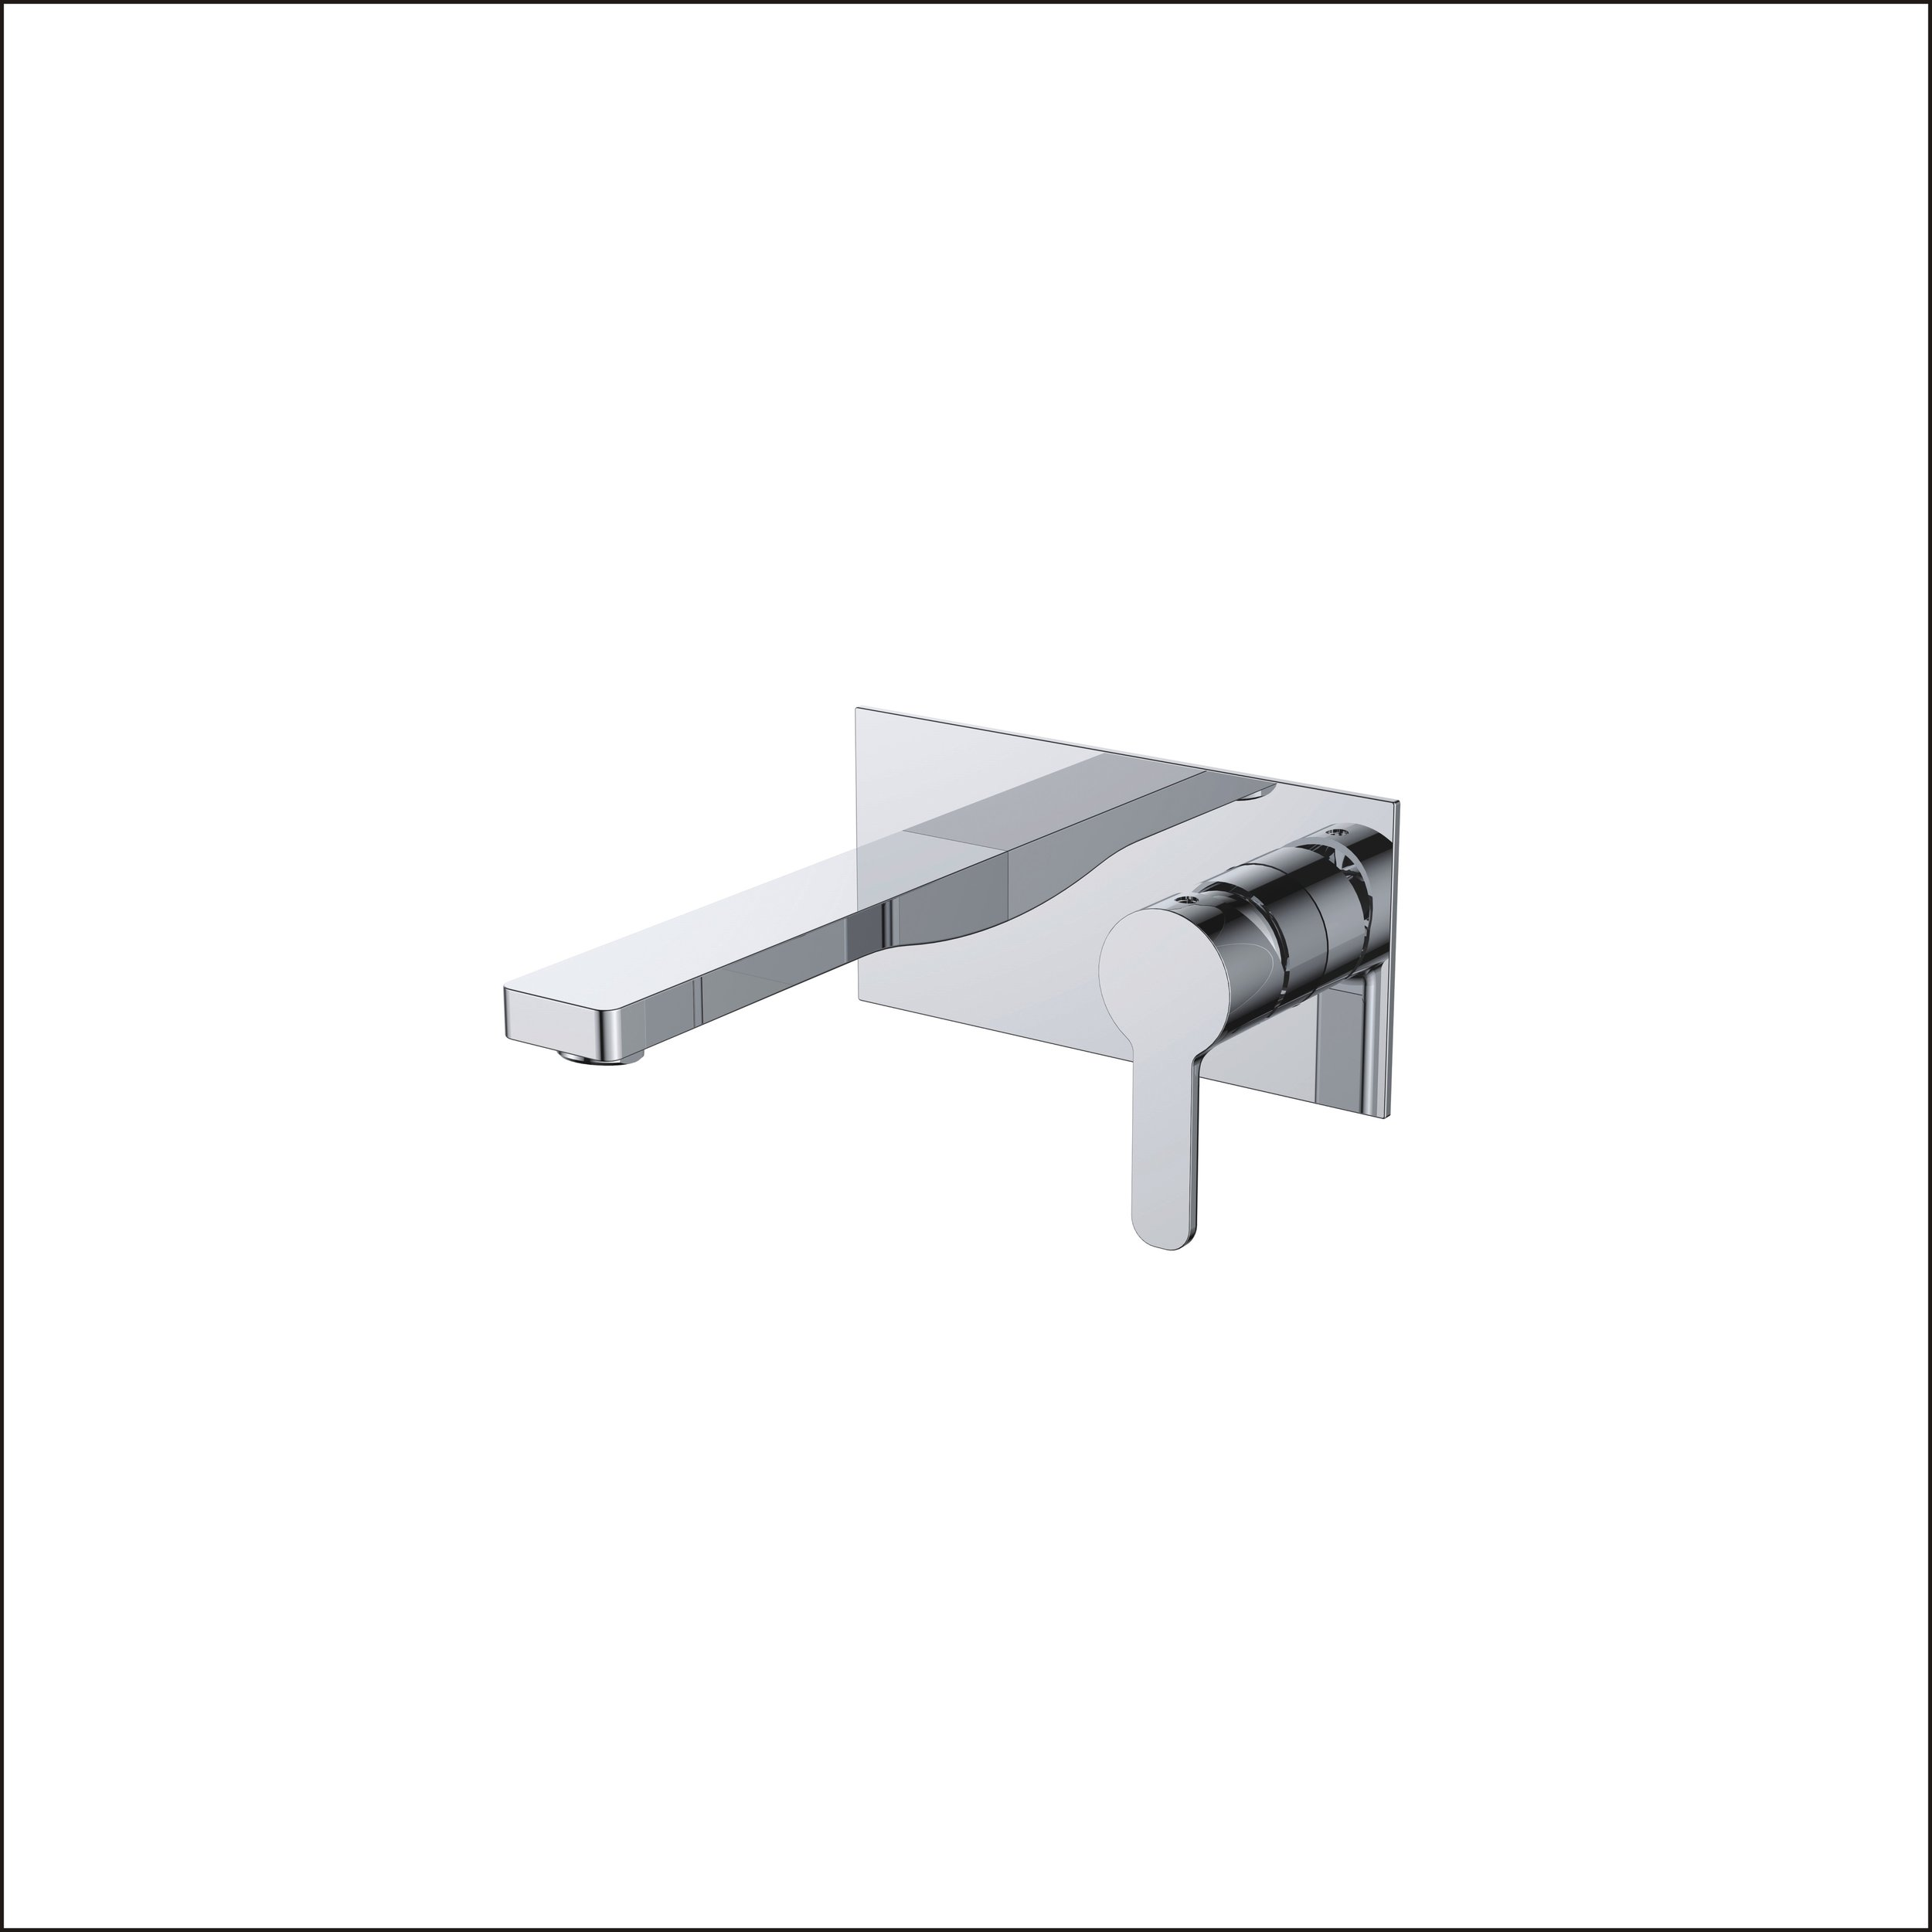 718-110: Concealed shower valve with spout